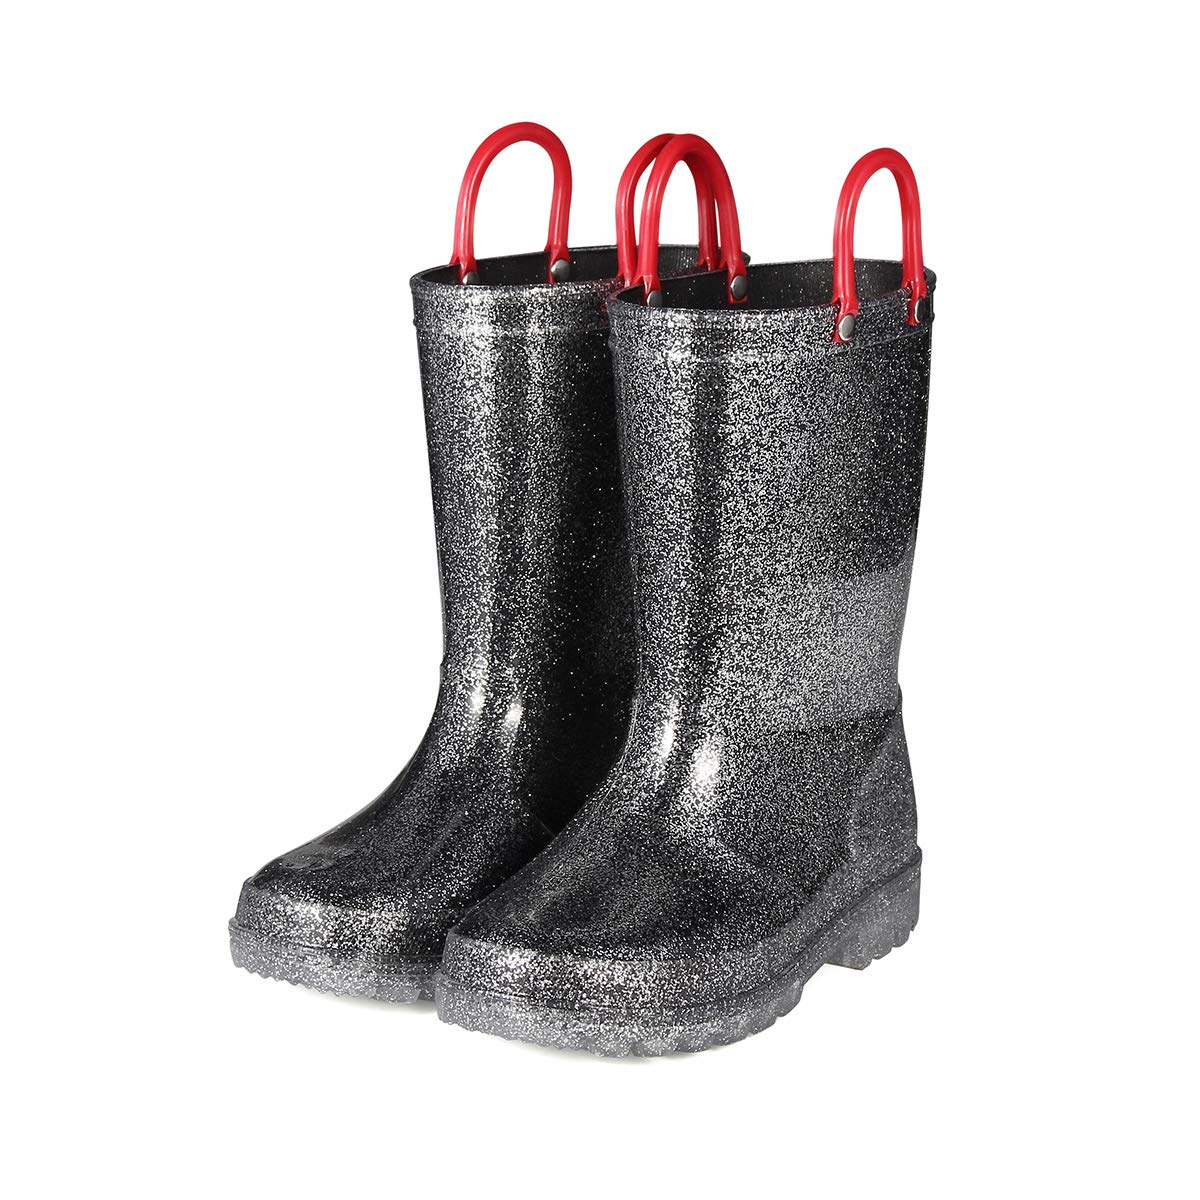 KomForme K Glitter Kids Rain Boots,Light Up Toddler Boots with Easy-on Handles for Girls